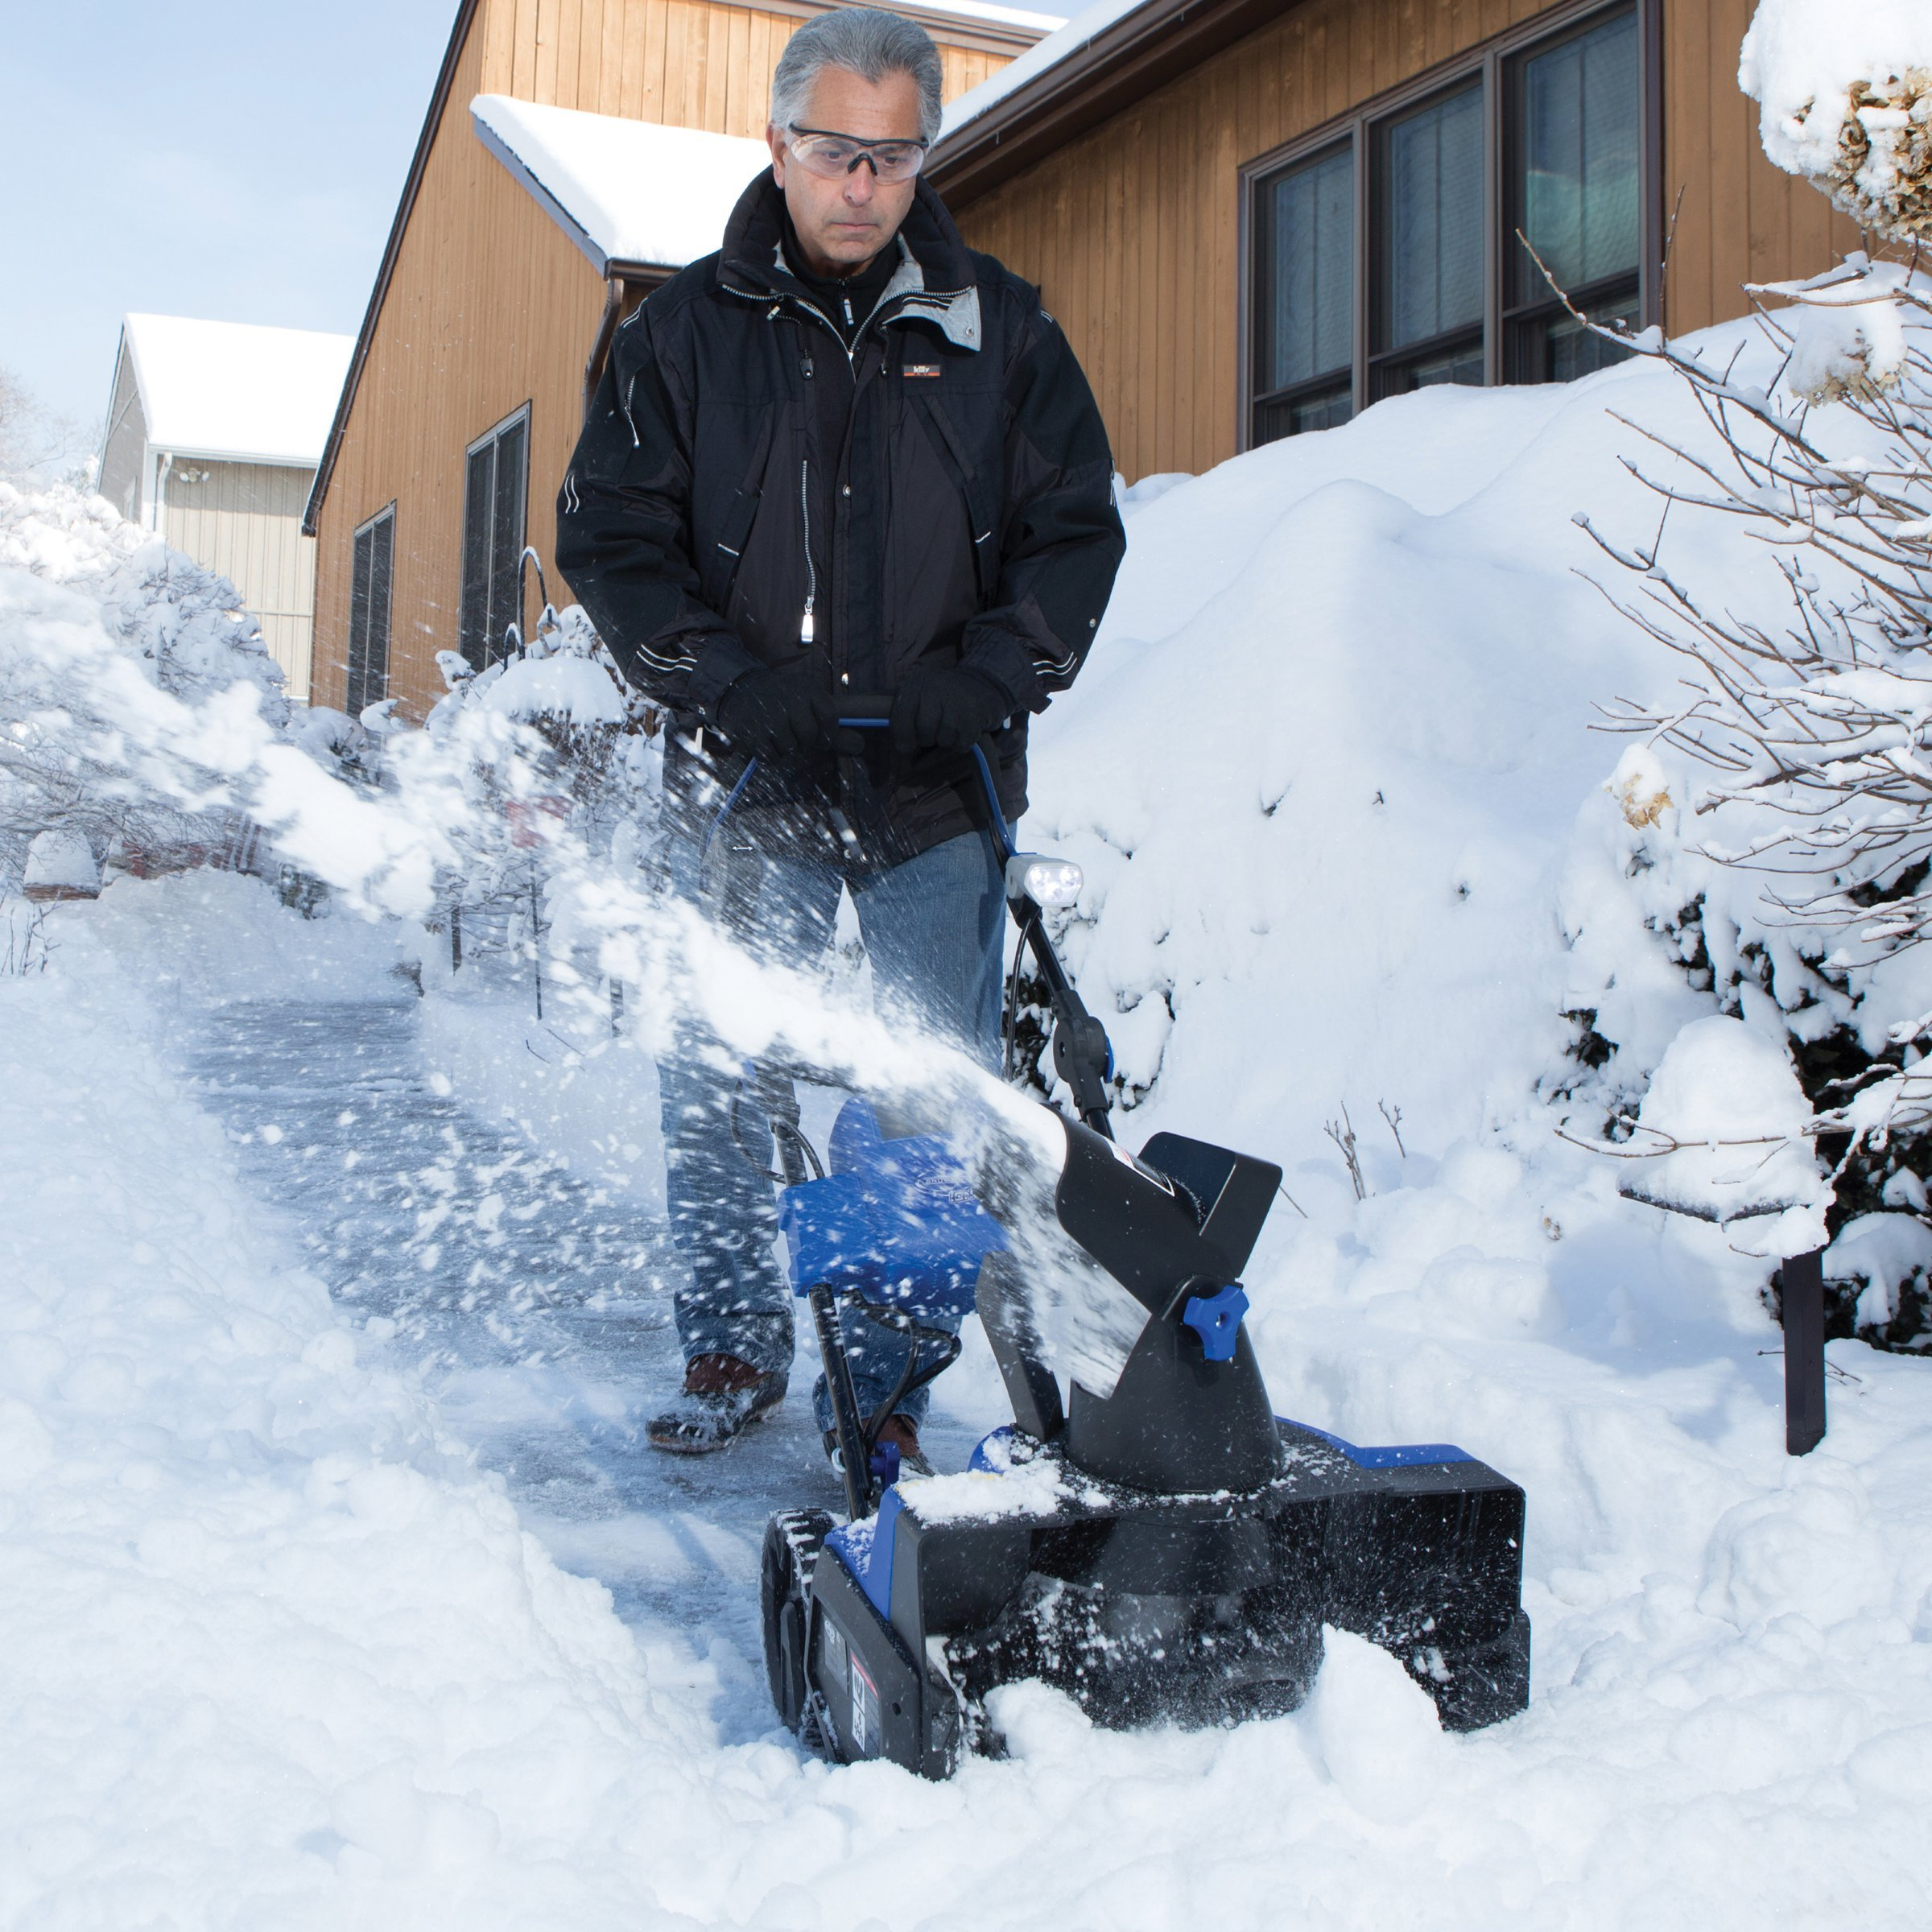 Snow Glo Cordless Electric Powered Snow Blower Machine With 18-Inch Wide Clearing Path and Adjustable Handle 180 Degree Auto-Rotate Chute